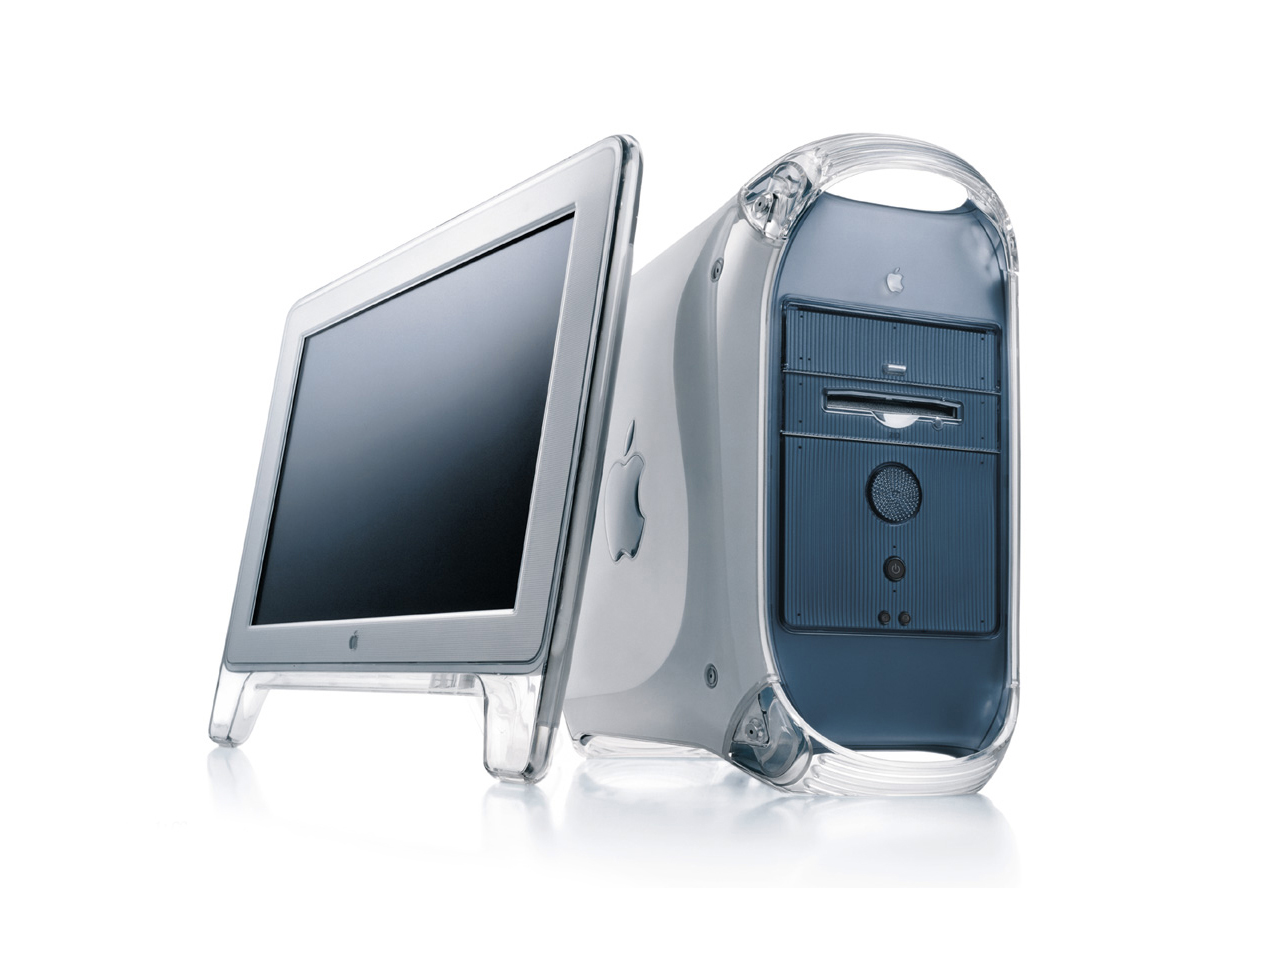 Apple Monitor 1000 43 Images About Mac On Pinterest Power Mac G4 Apple